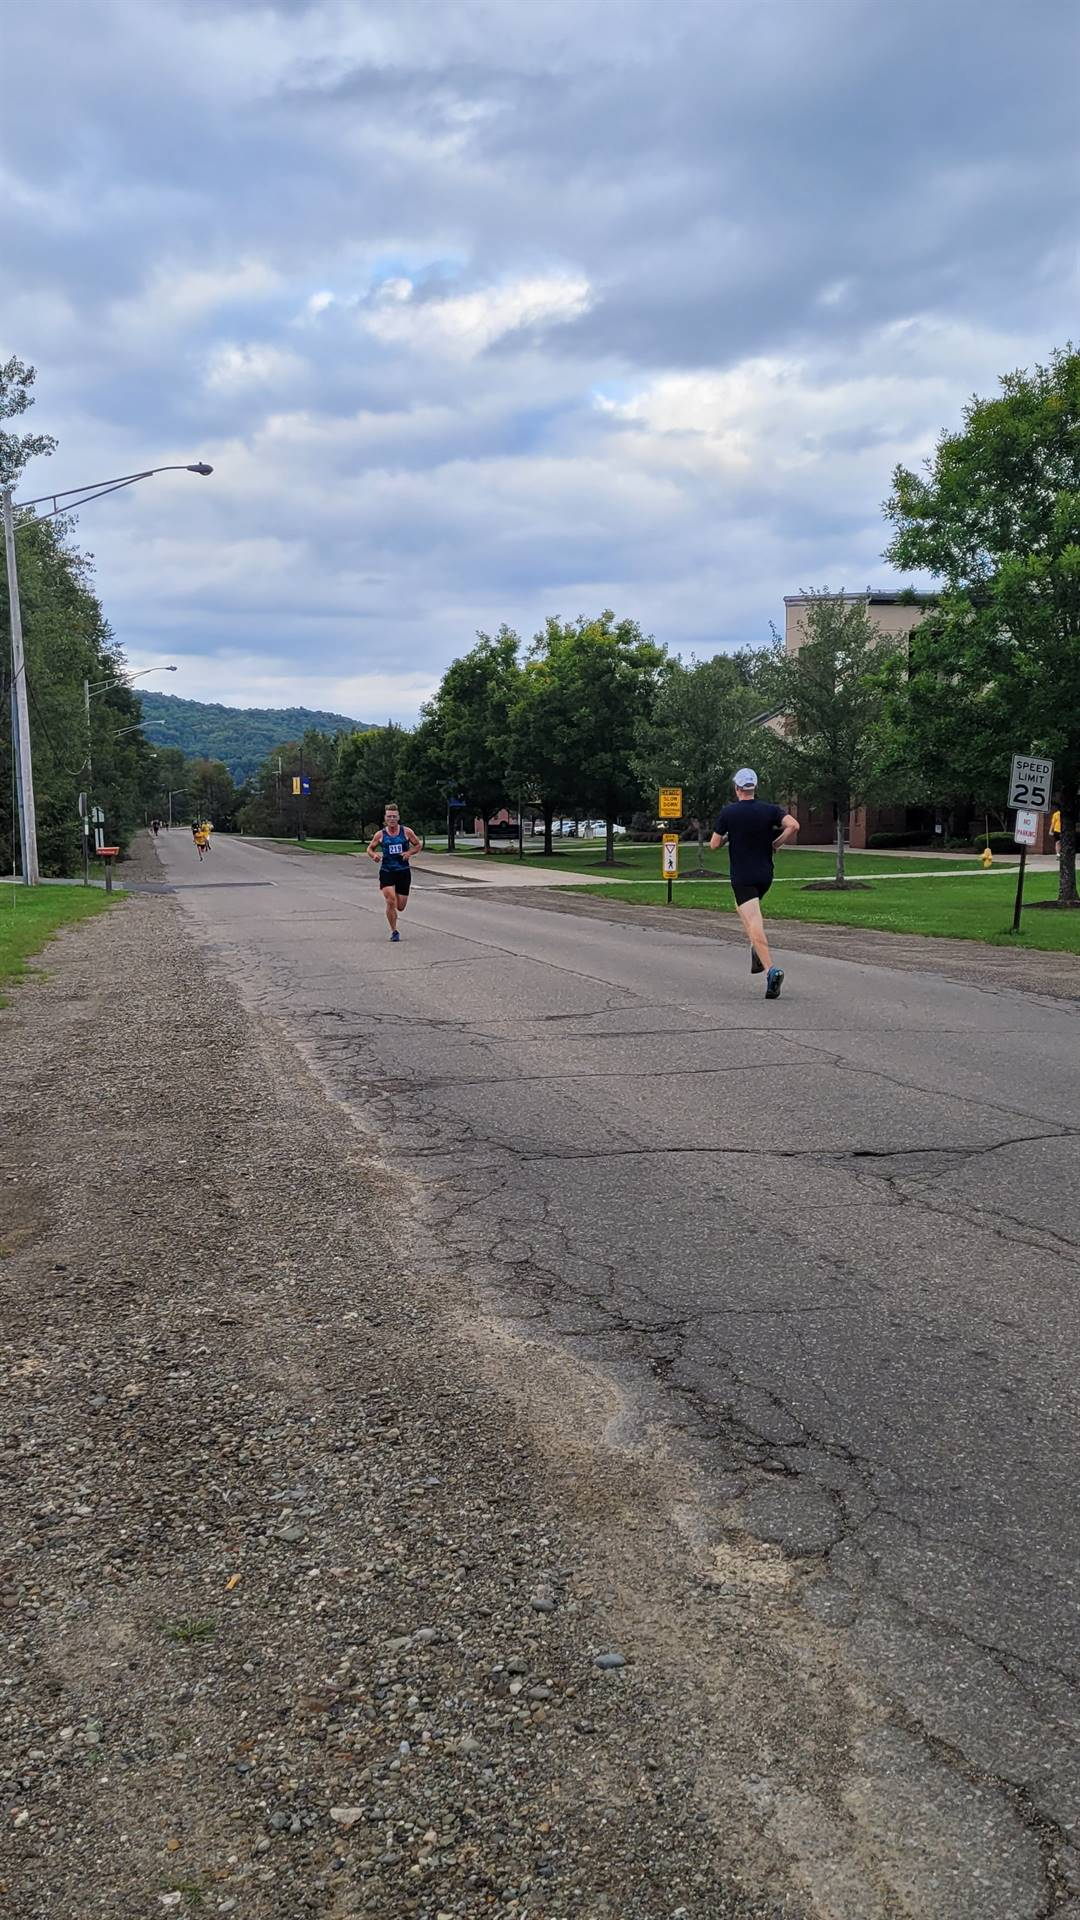 various people running on the street during the 5K race